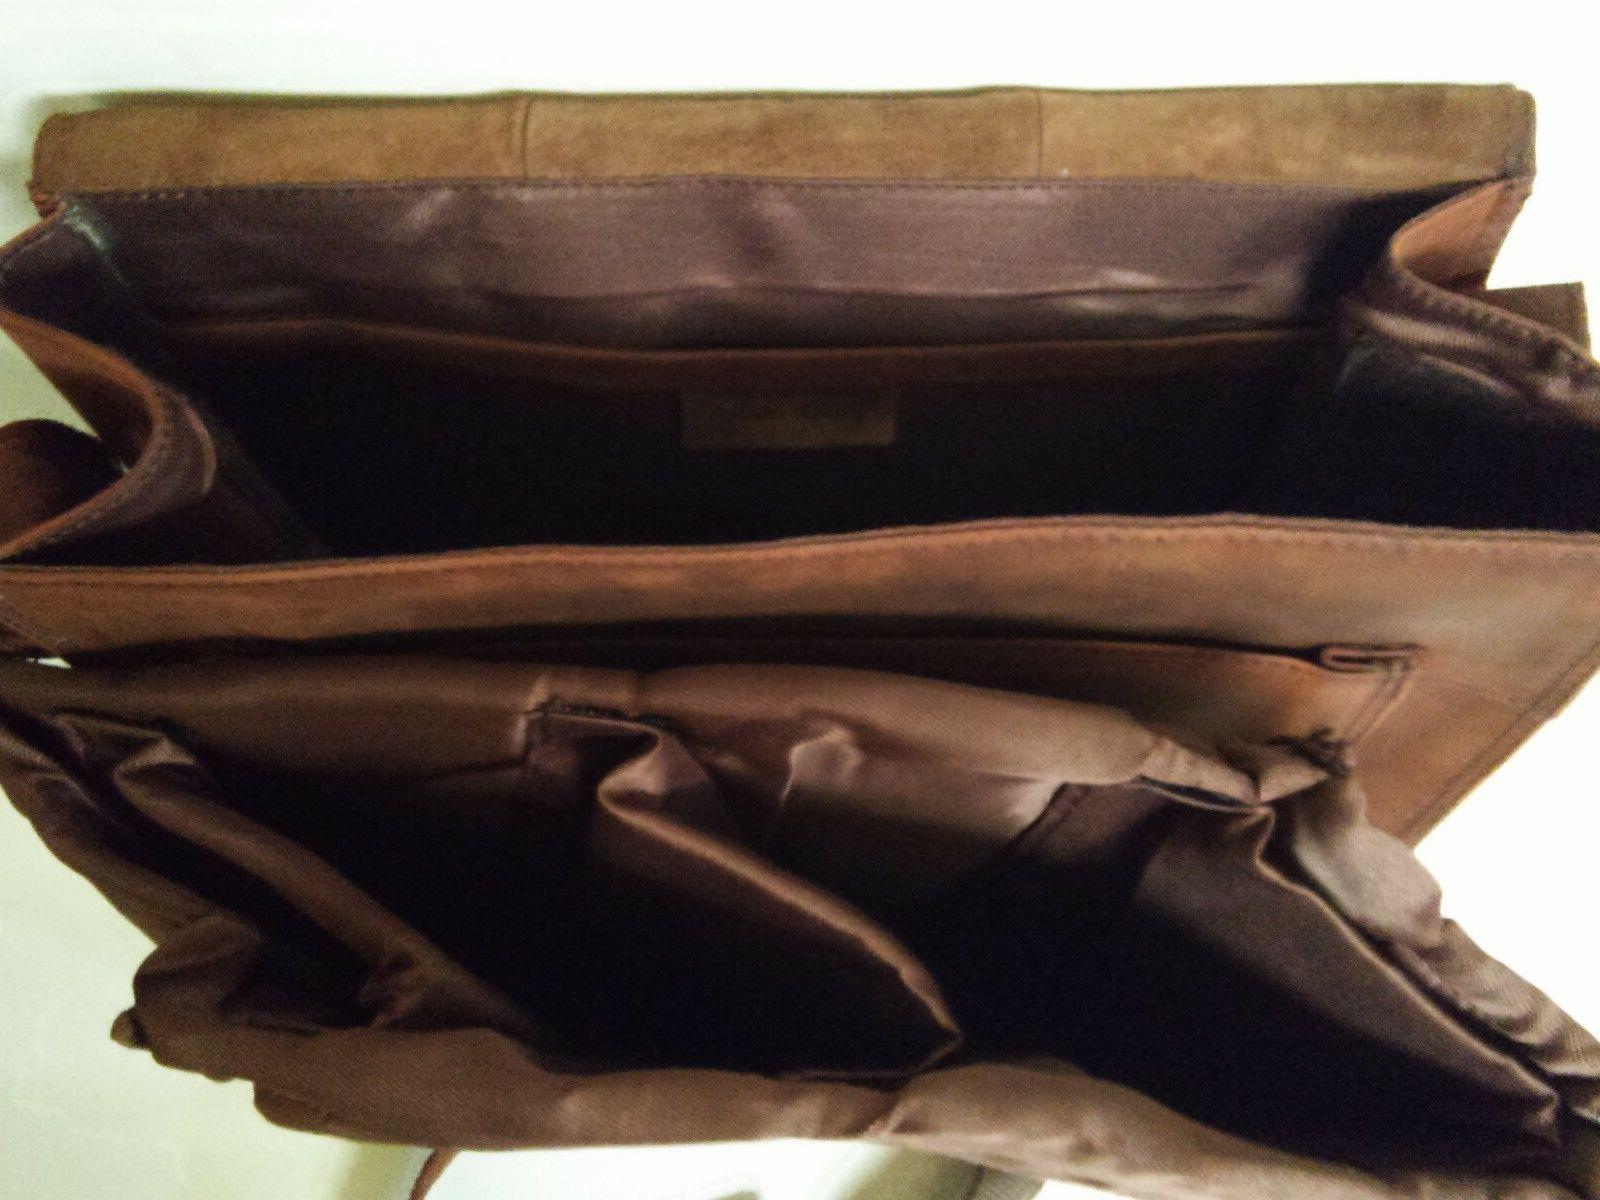 FeatherTouch Leather Camera DSLR Travel Camera Bag Inches Brown